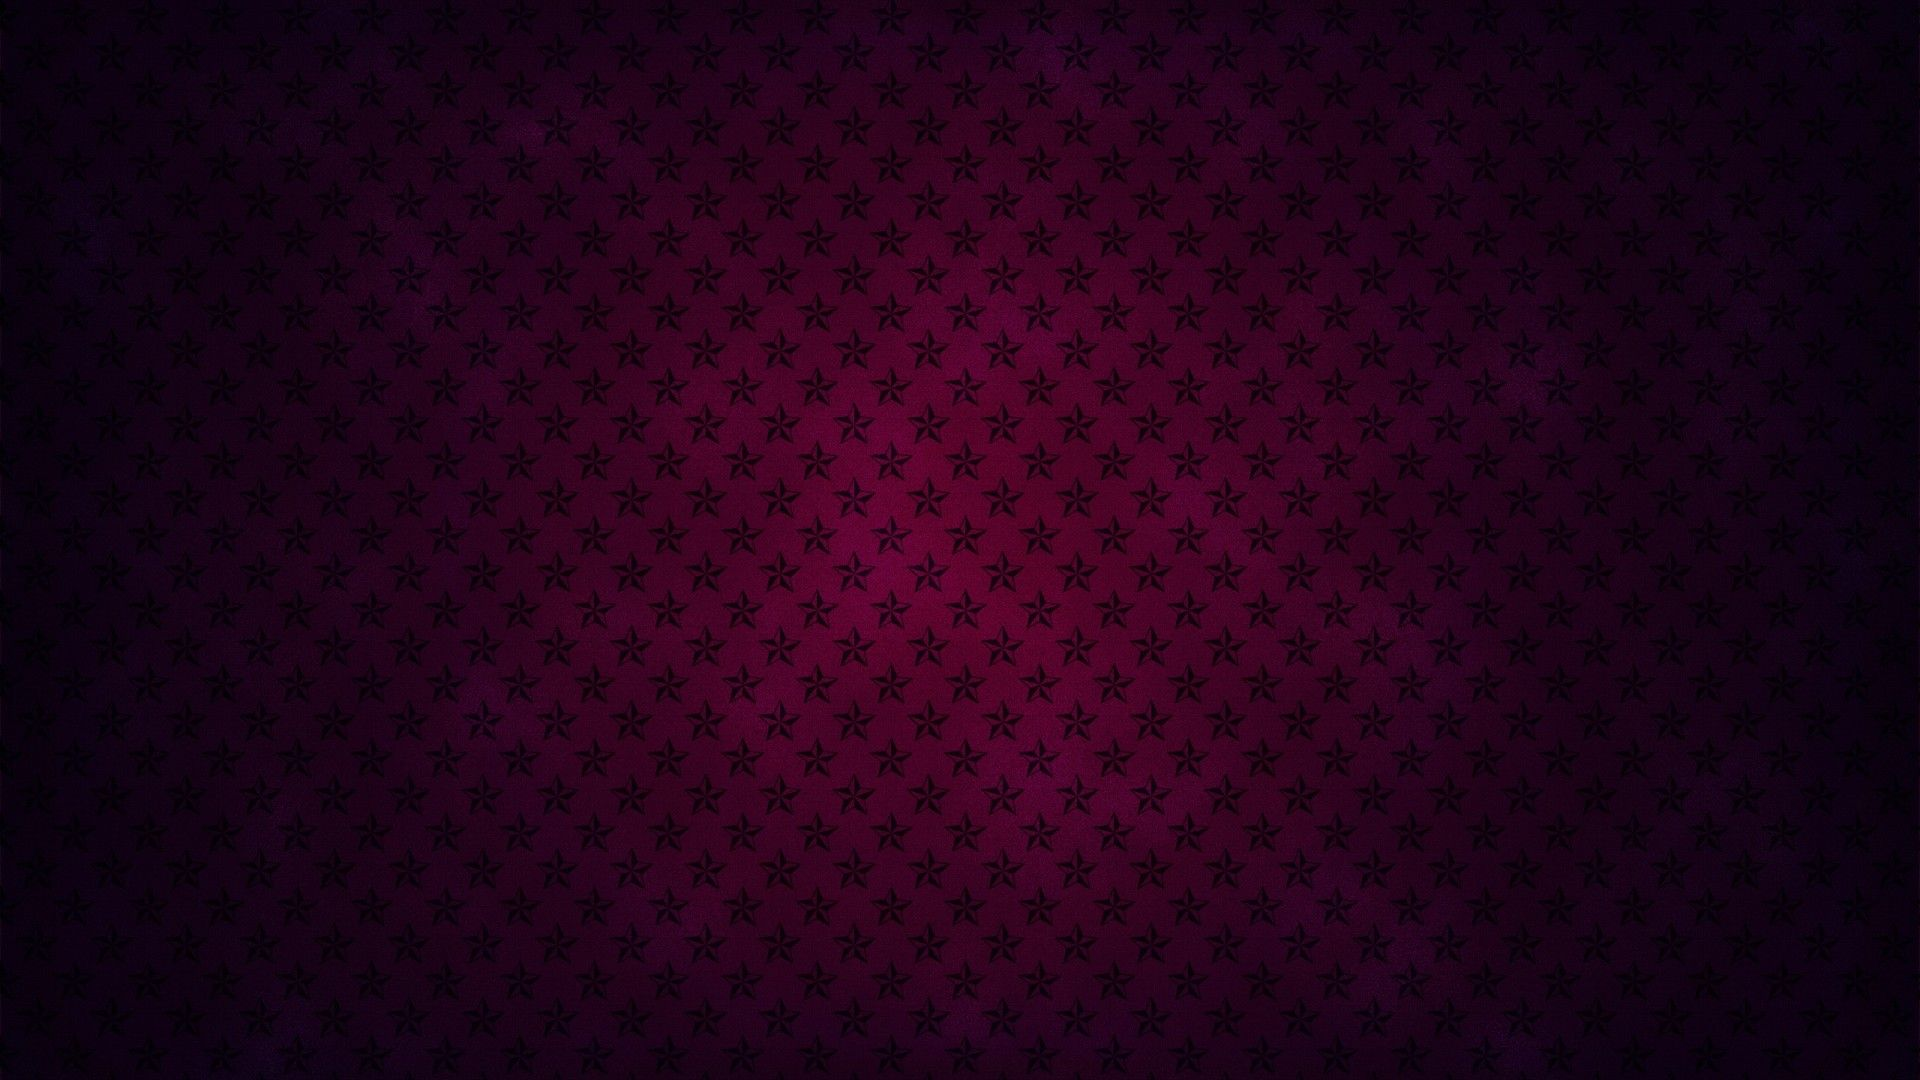 Download 1920x1080 Full Hd 1080p 1080i Texture Background Stars Patterns Shadows Wallpaper Widescreen Wal Hd Textures Textured Wallpaper Simple Backgrounds